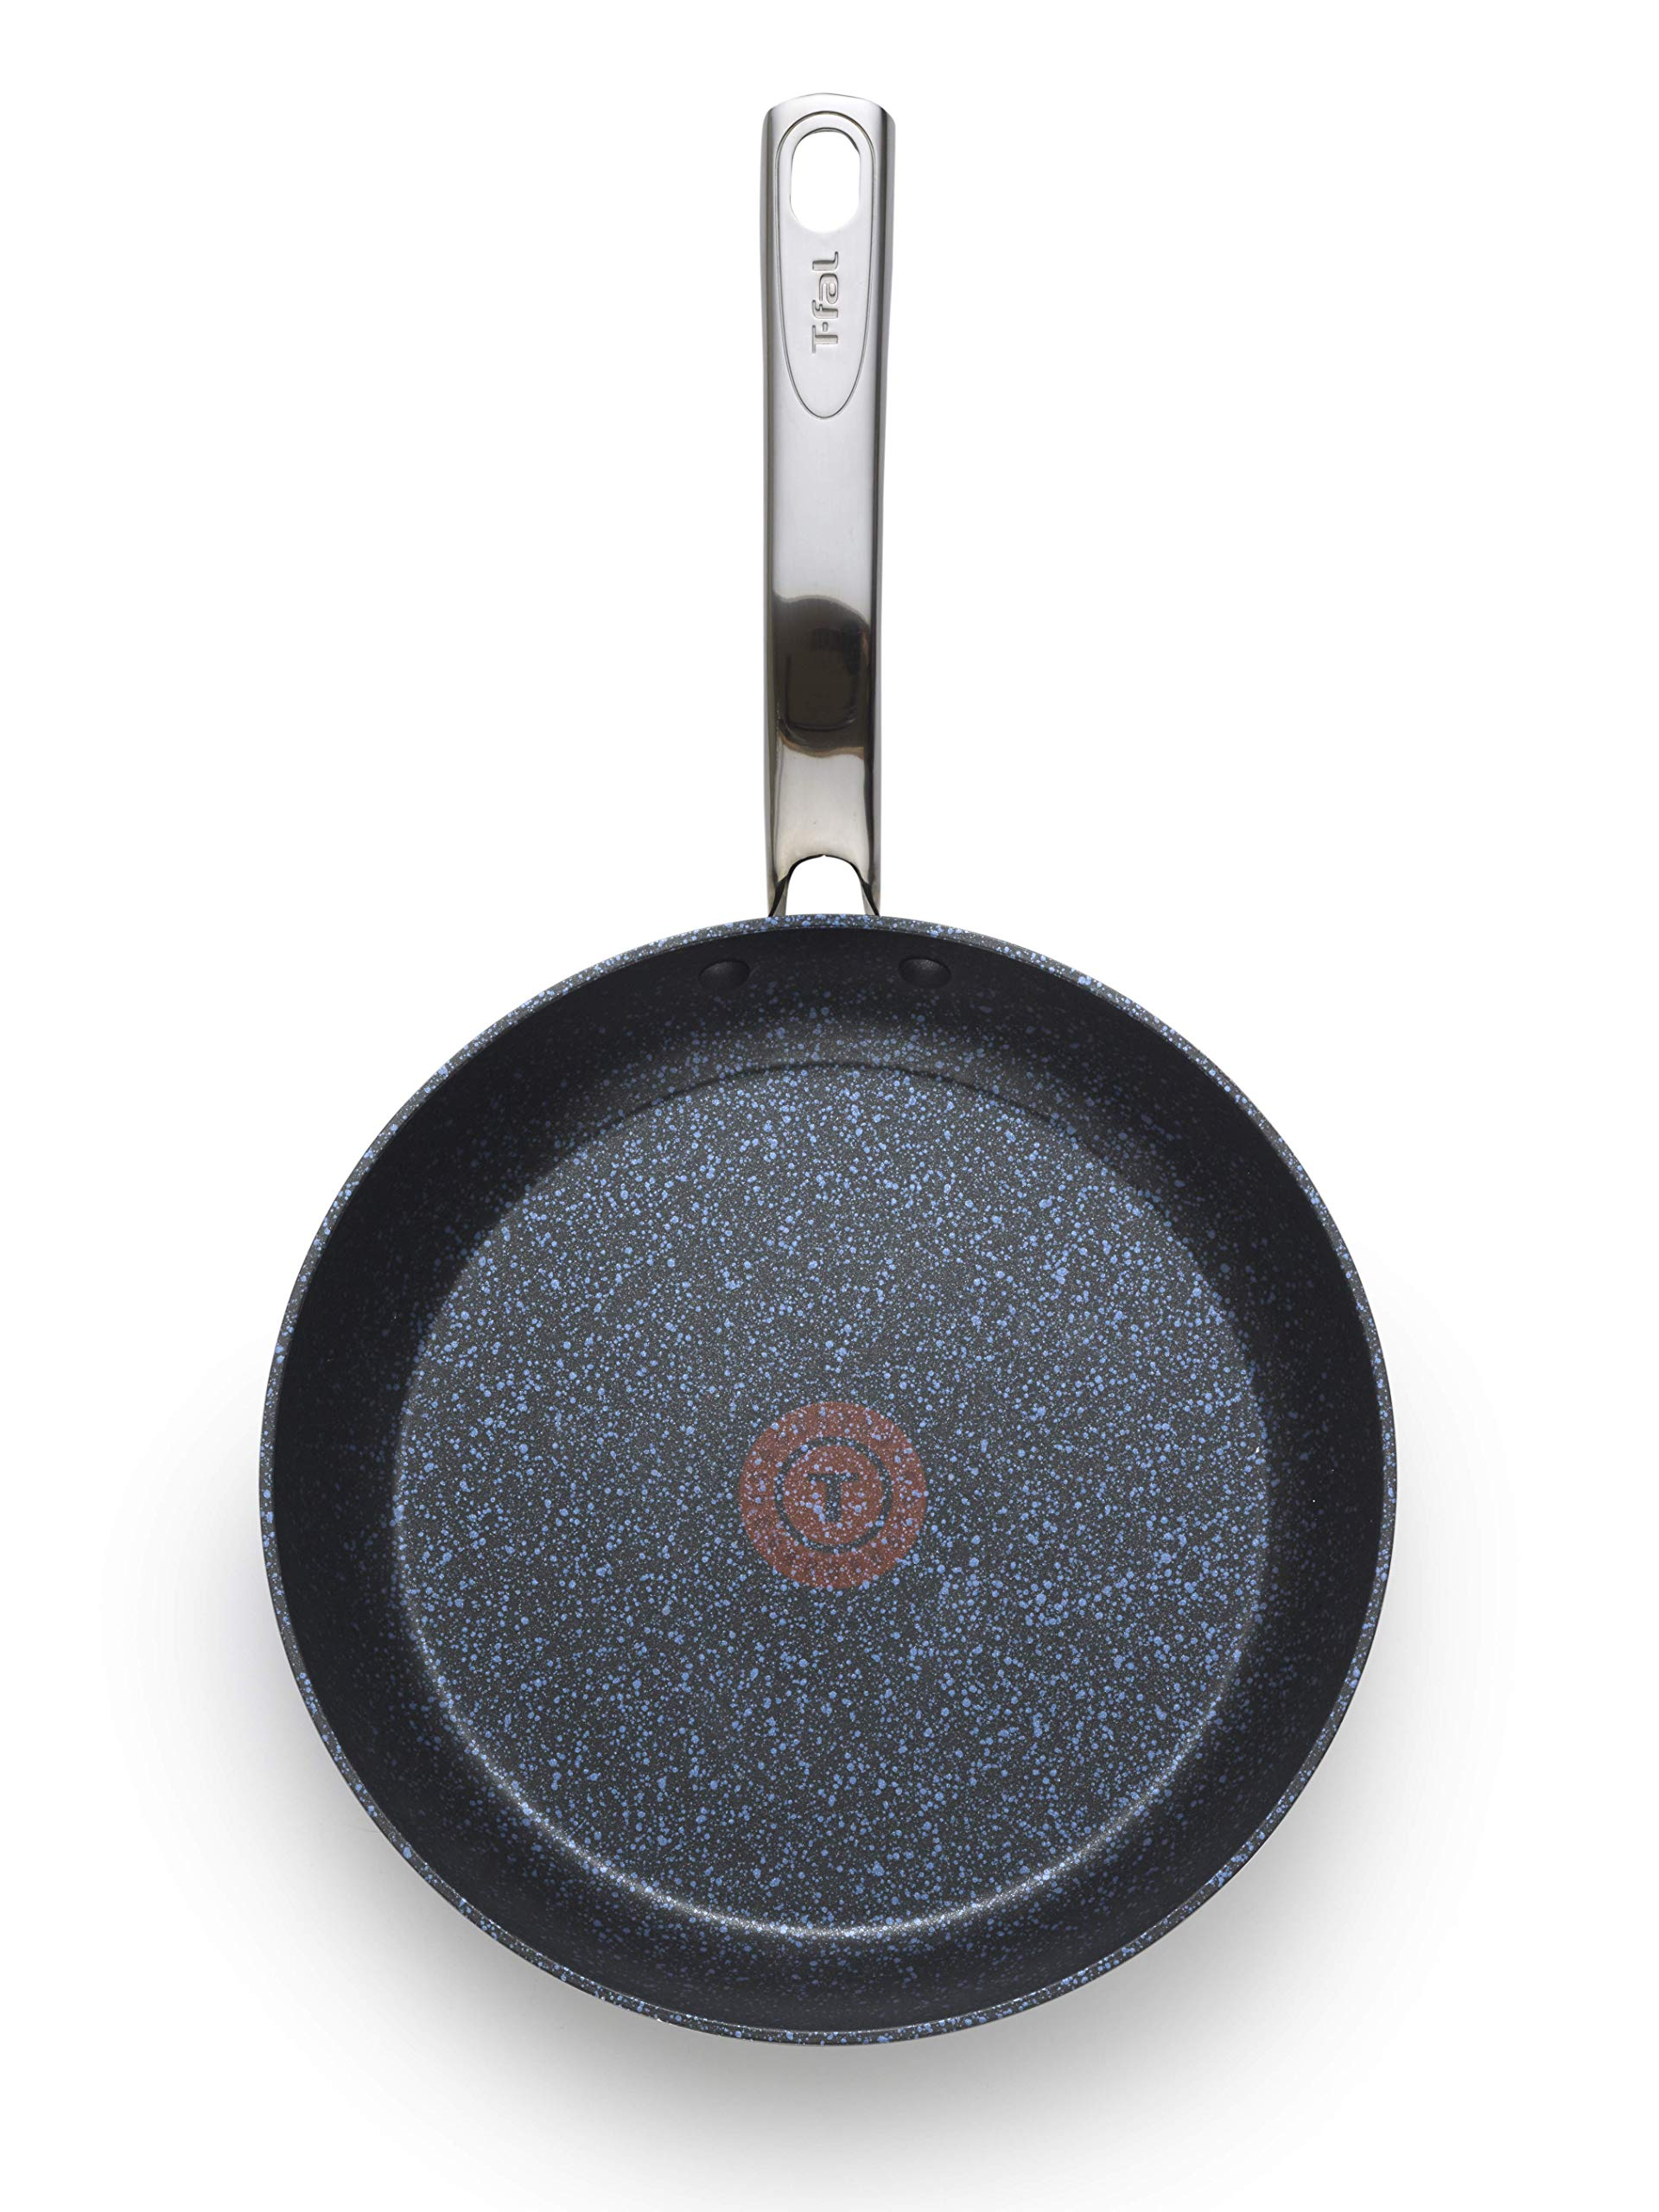 T-fal G10405 Heatmaster Nonstick Thermo-Spot Heat Indicator Fry Pan Cookware, 10-Inch, Black - As Seen on TV by T-fal (Image #3)